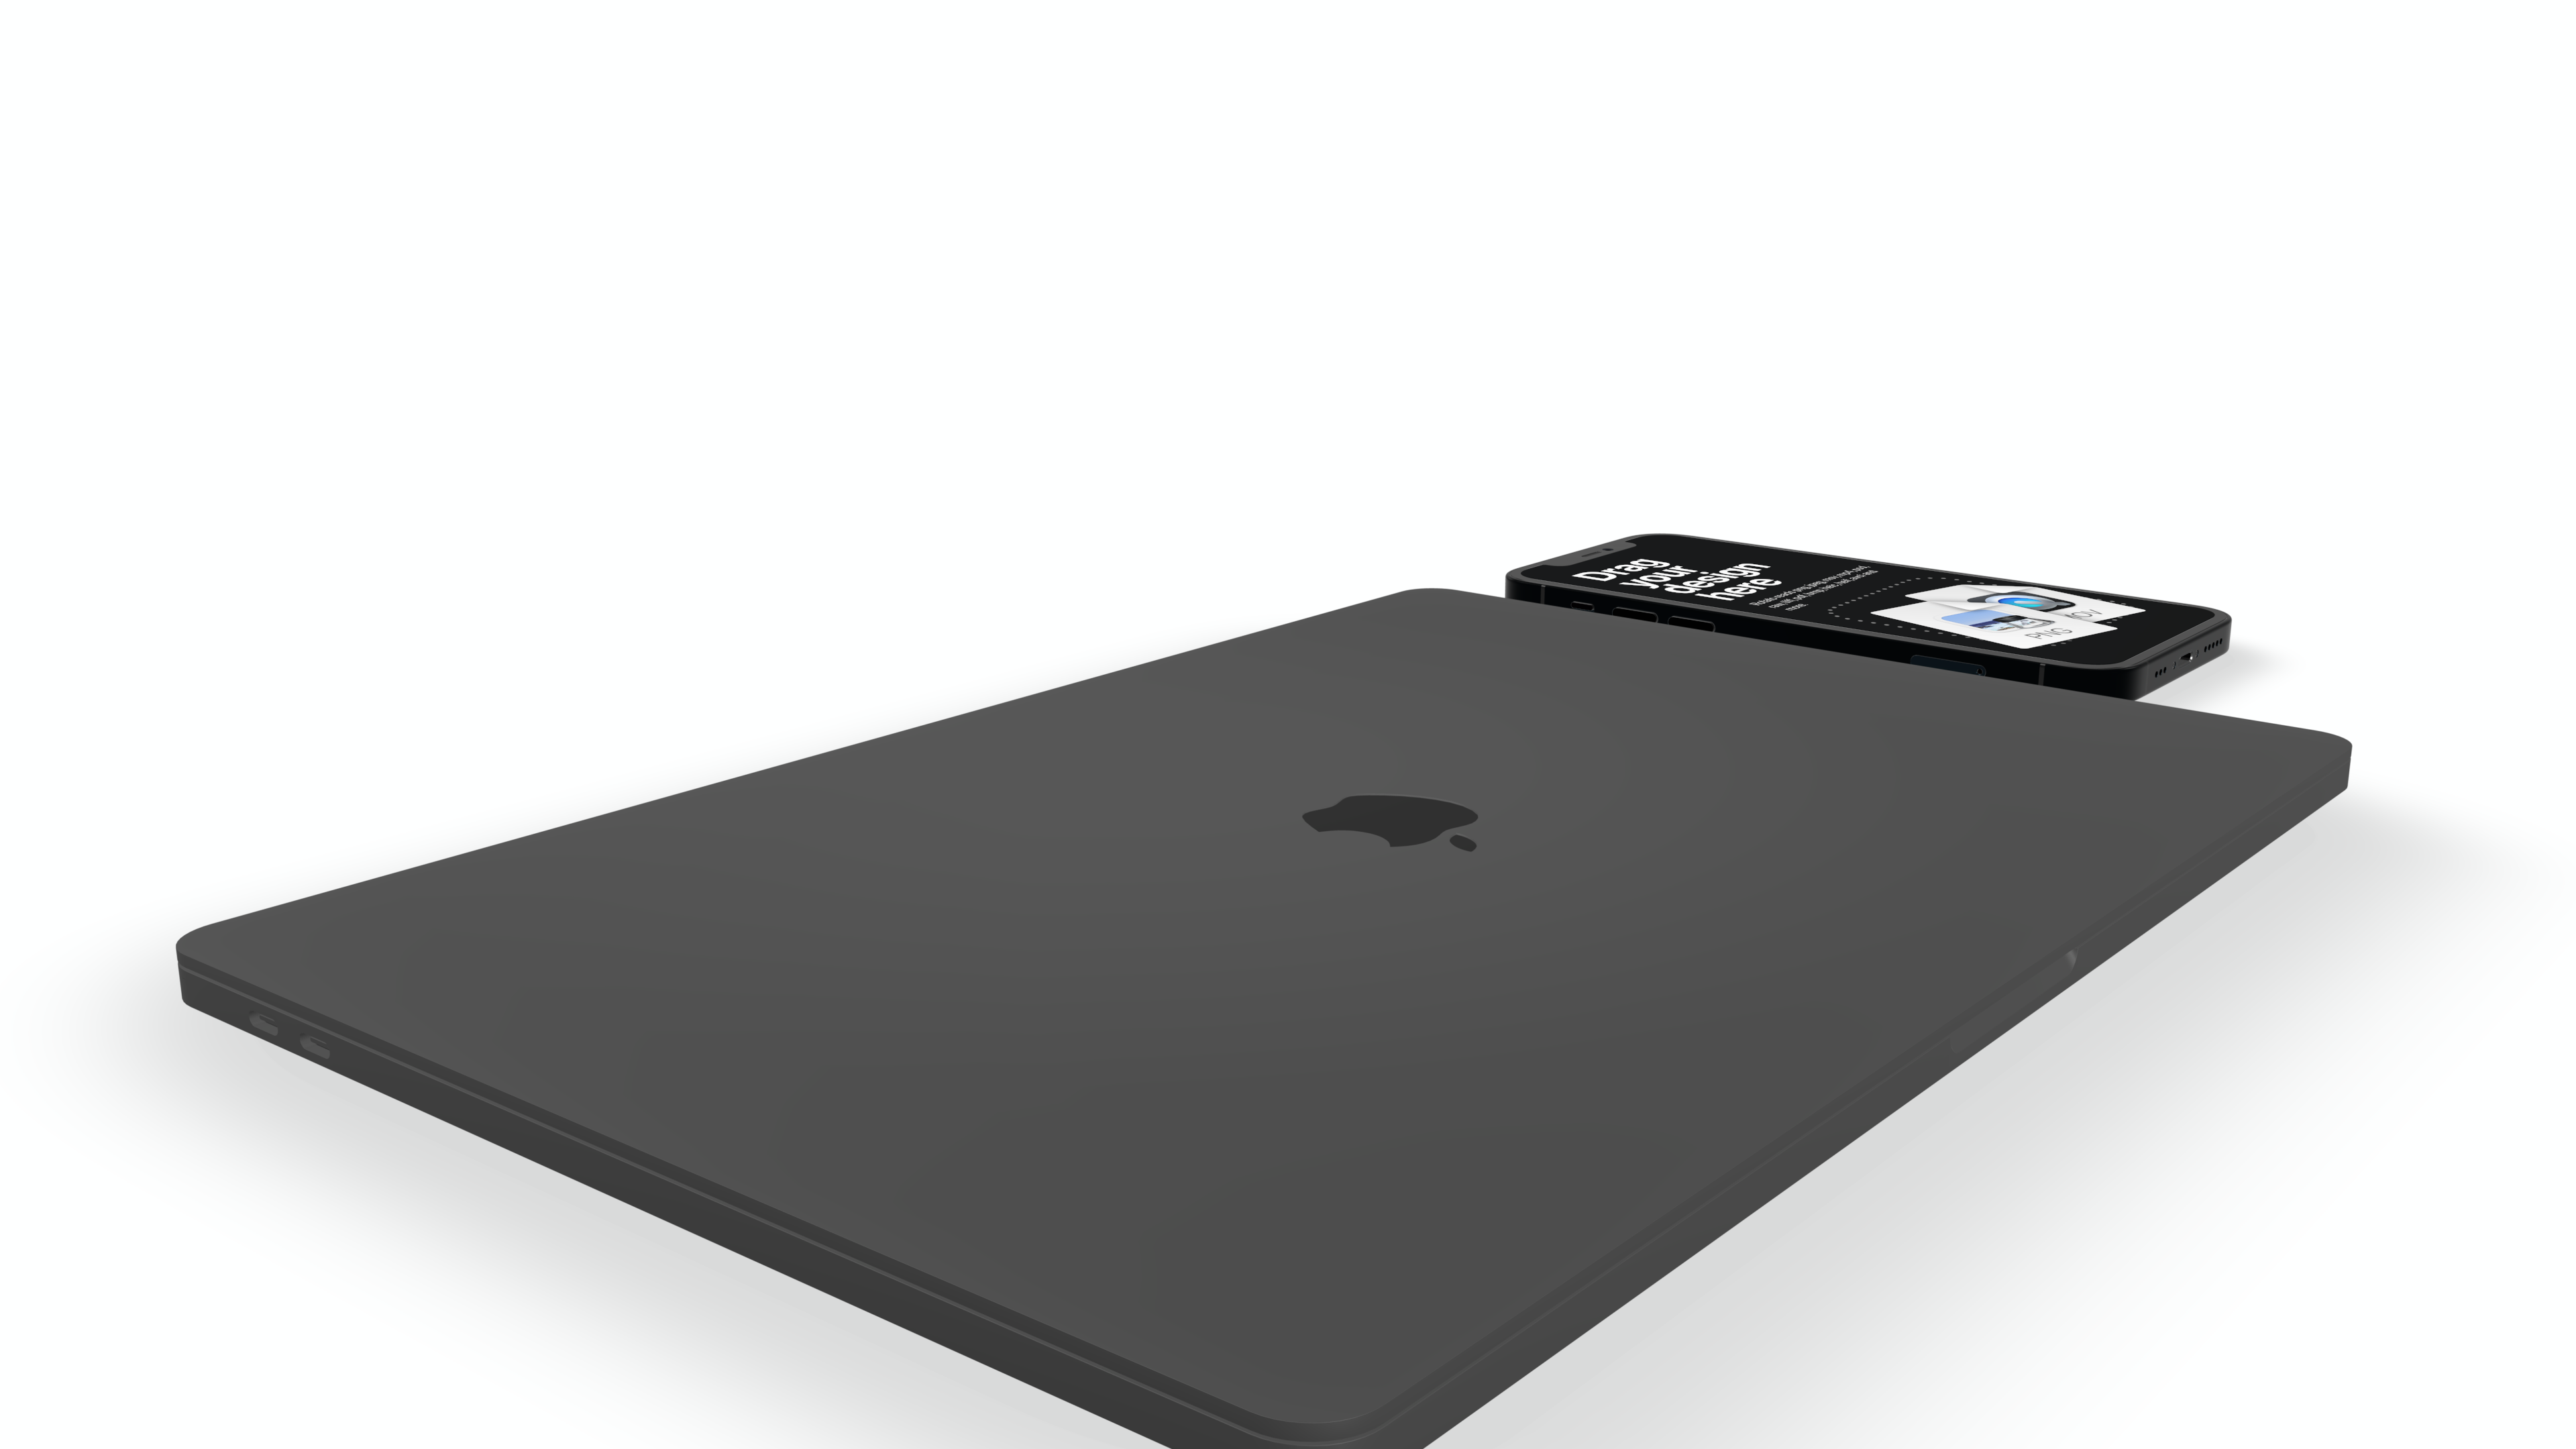 Closed laptop mockup with a phone next to it